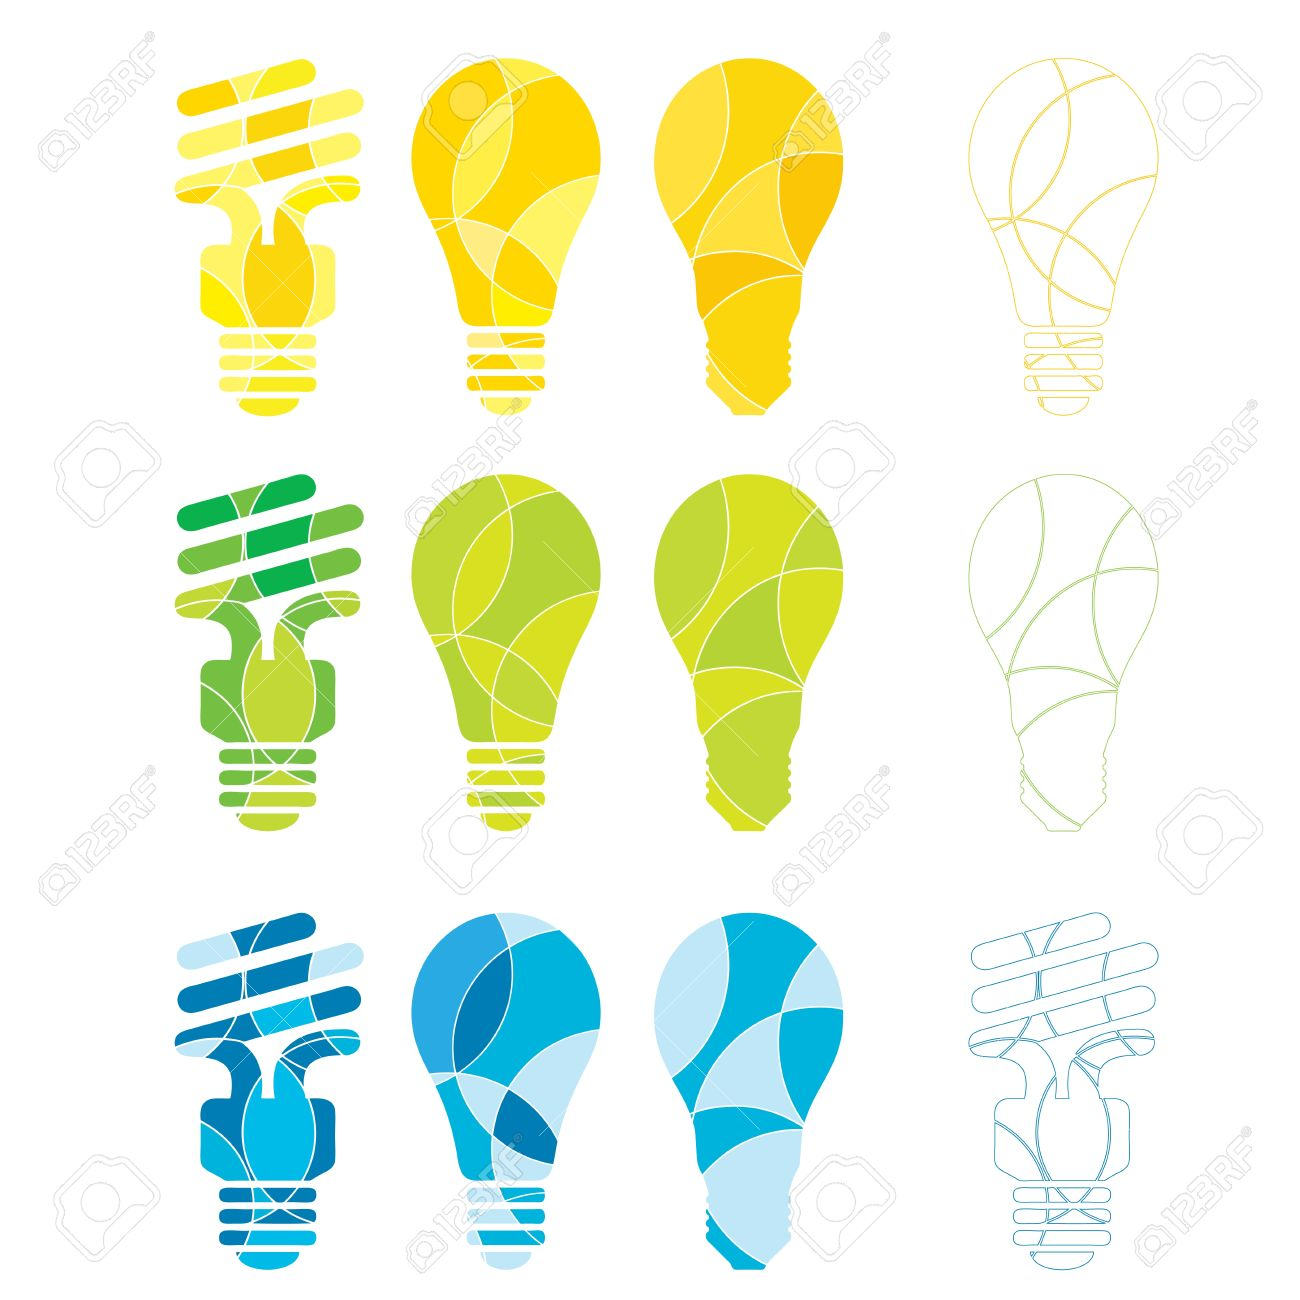 A Set Of Abstract Coloured Light Bulb Illustrations In Energy.